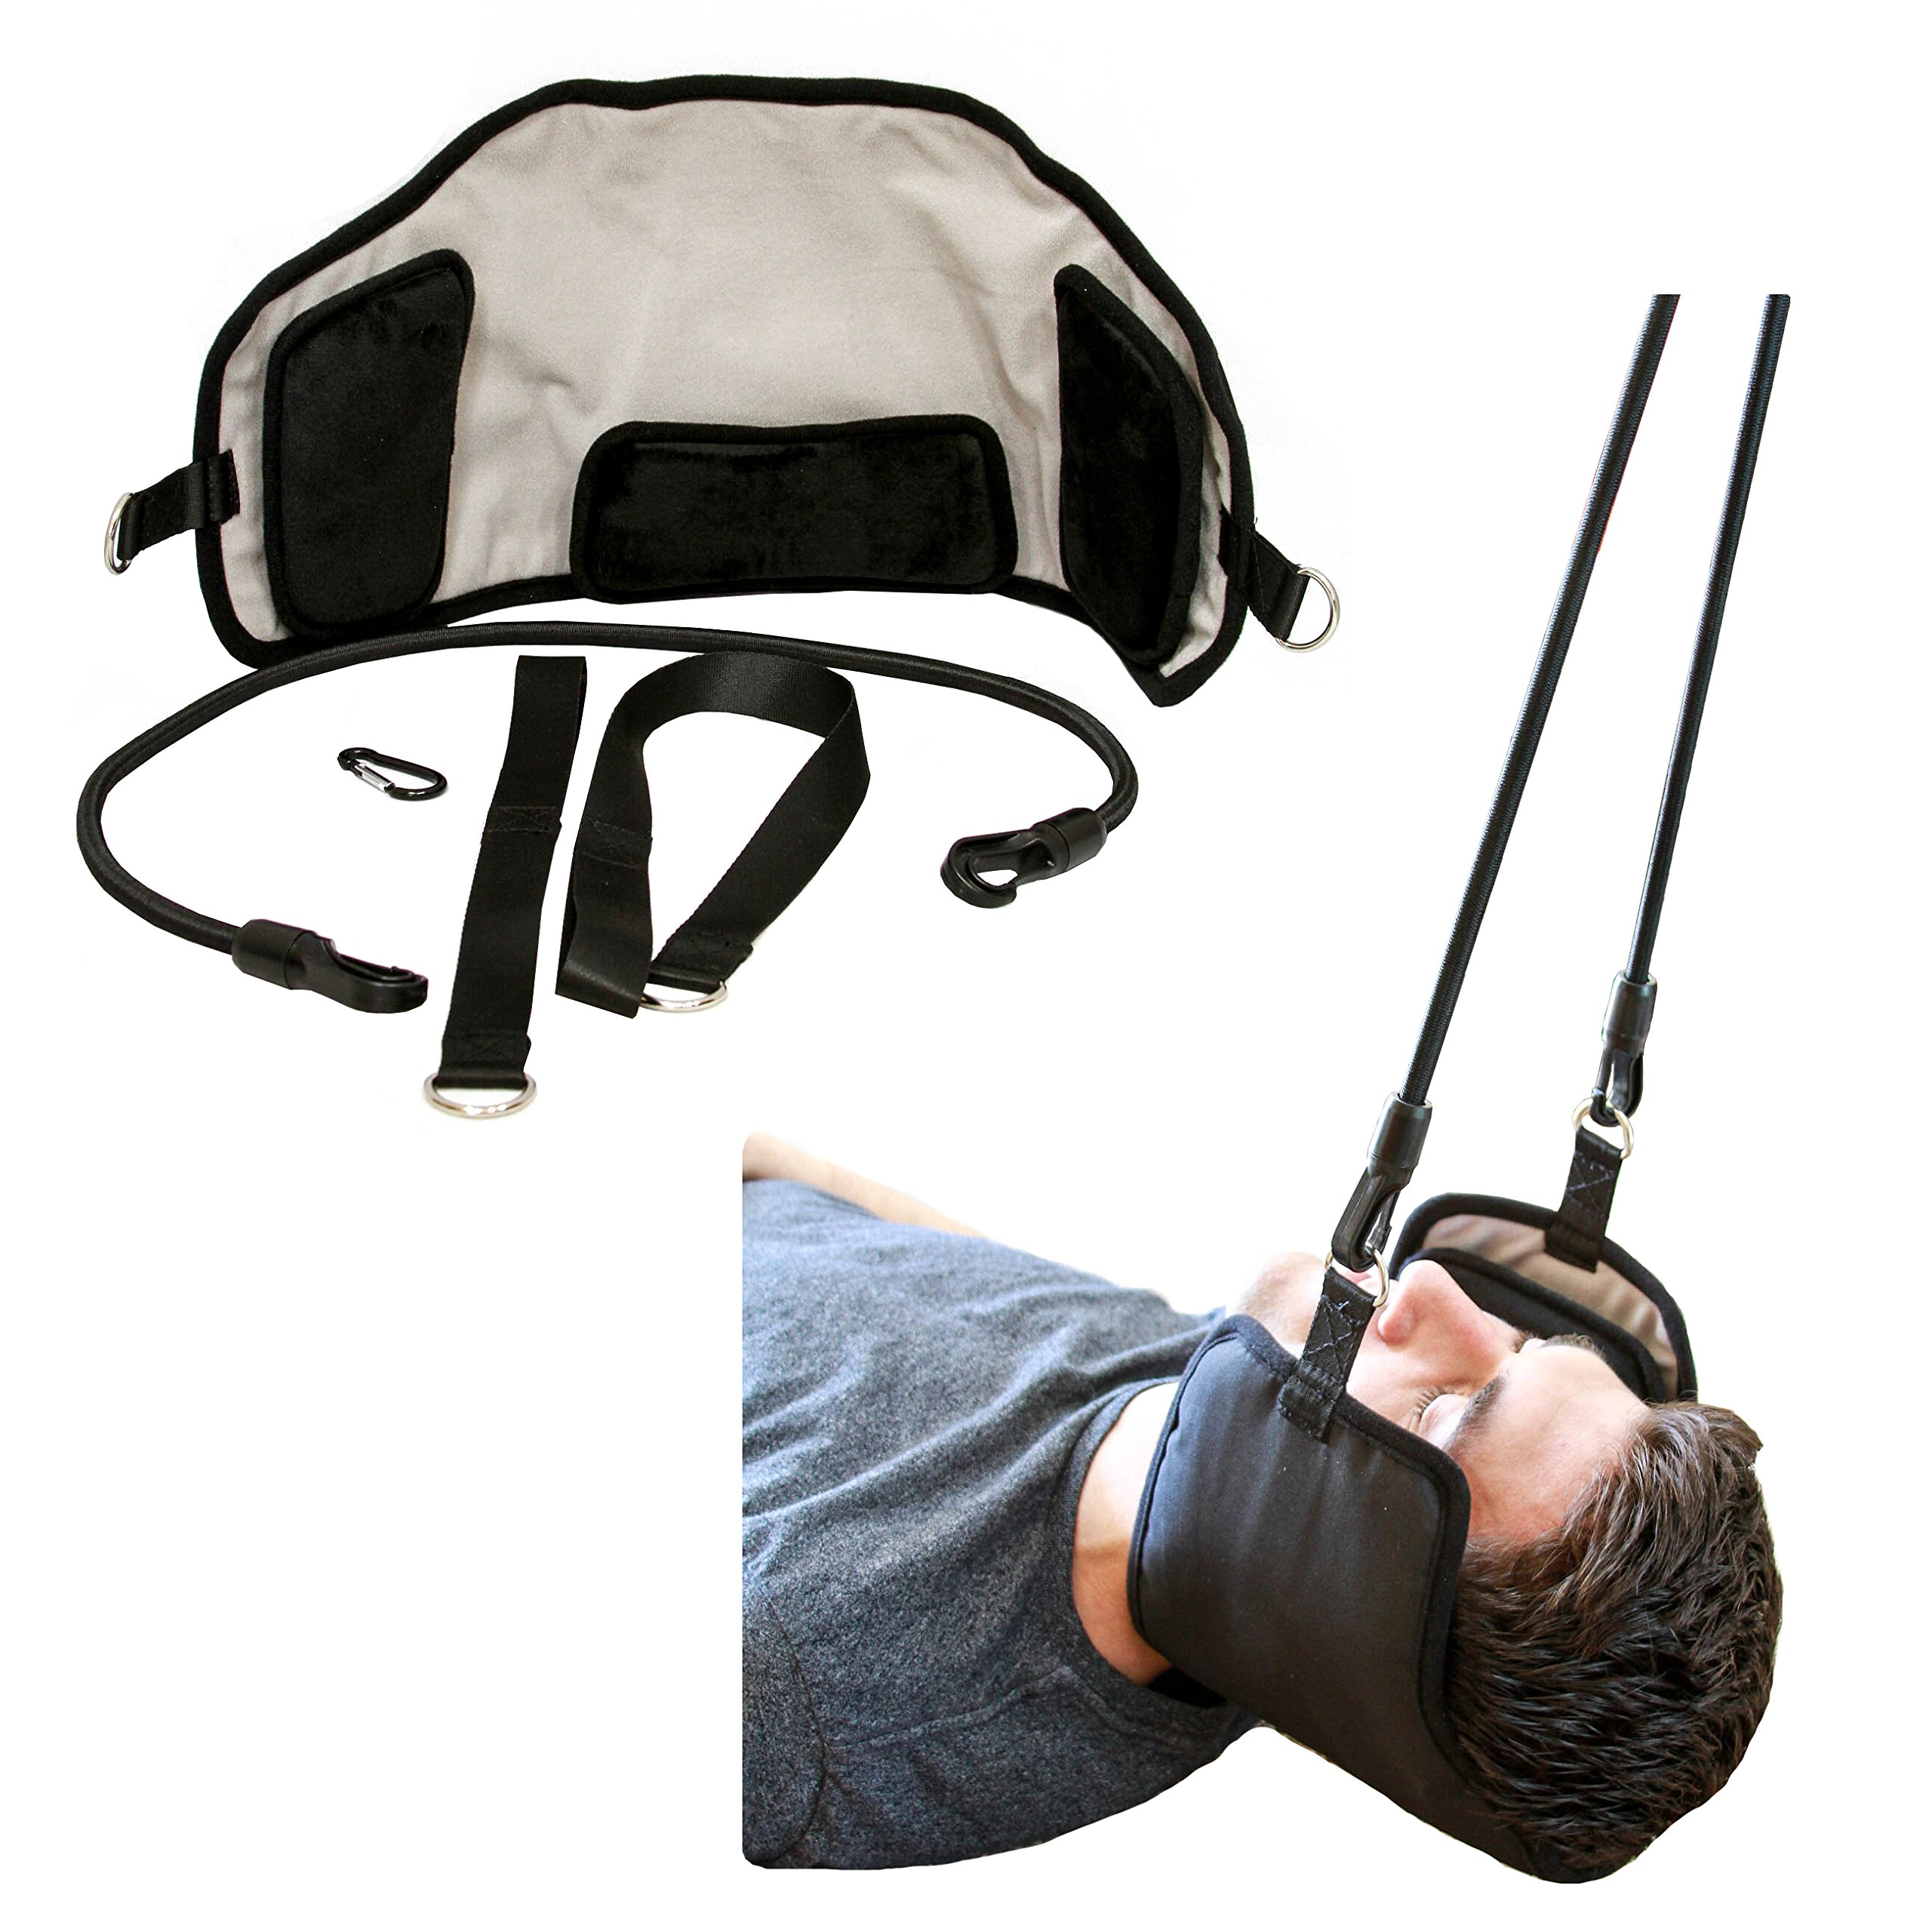 Neck Cradle for Neck Pain Relief - Relaxing Cervical Traction Device Provides Neck Pain Relief